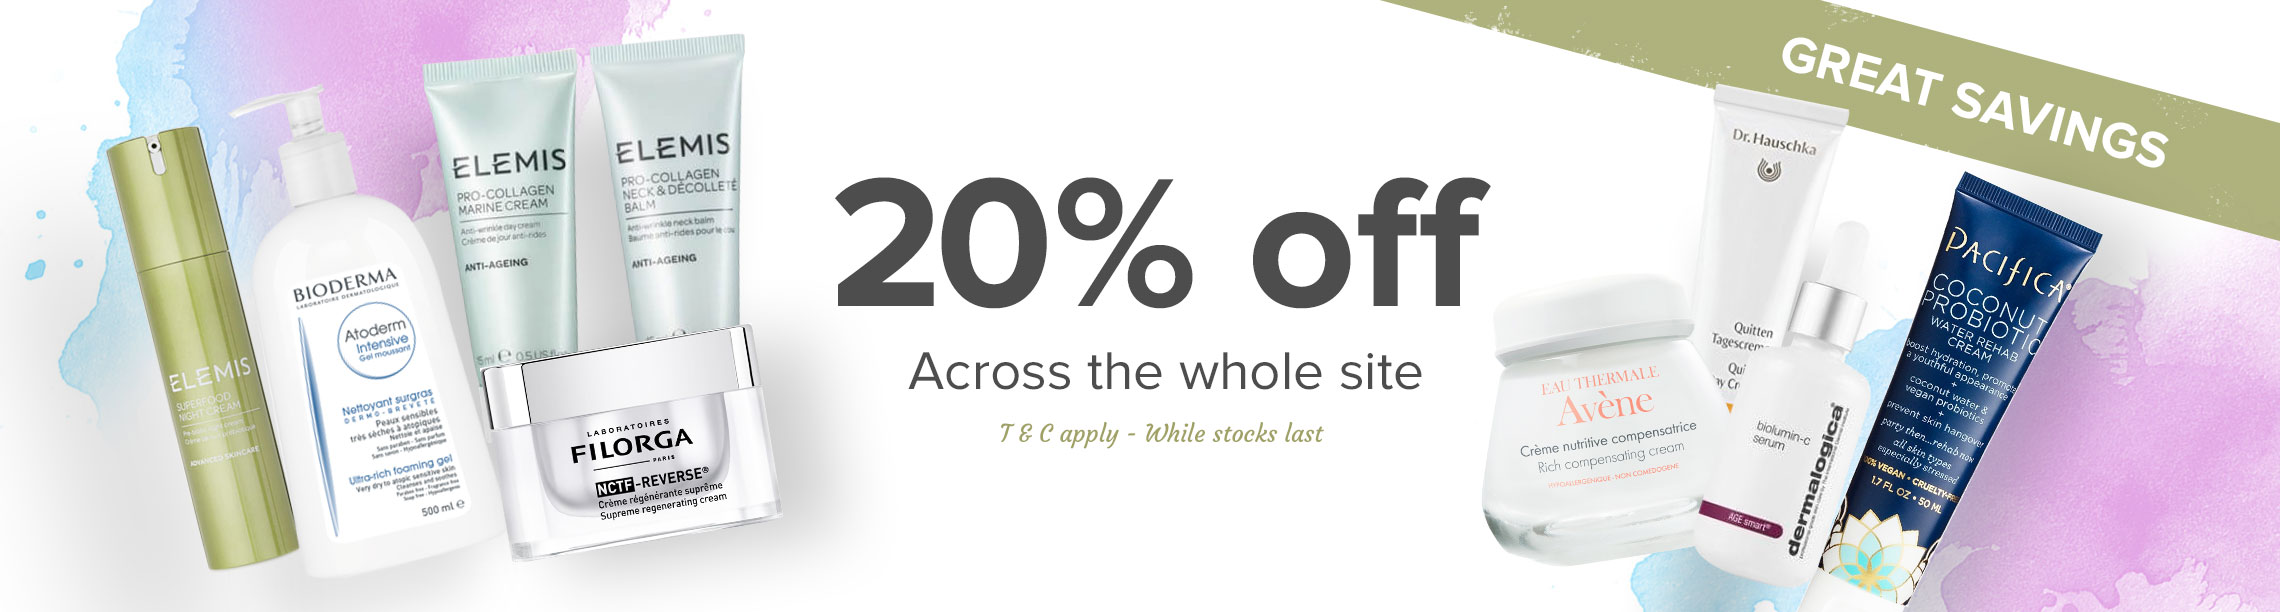 20% off the whole site